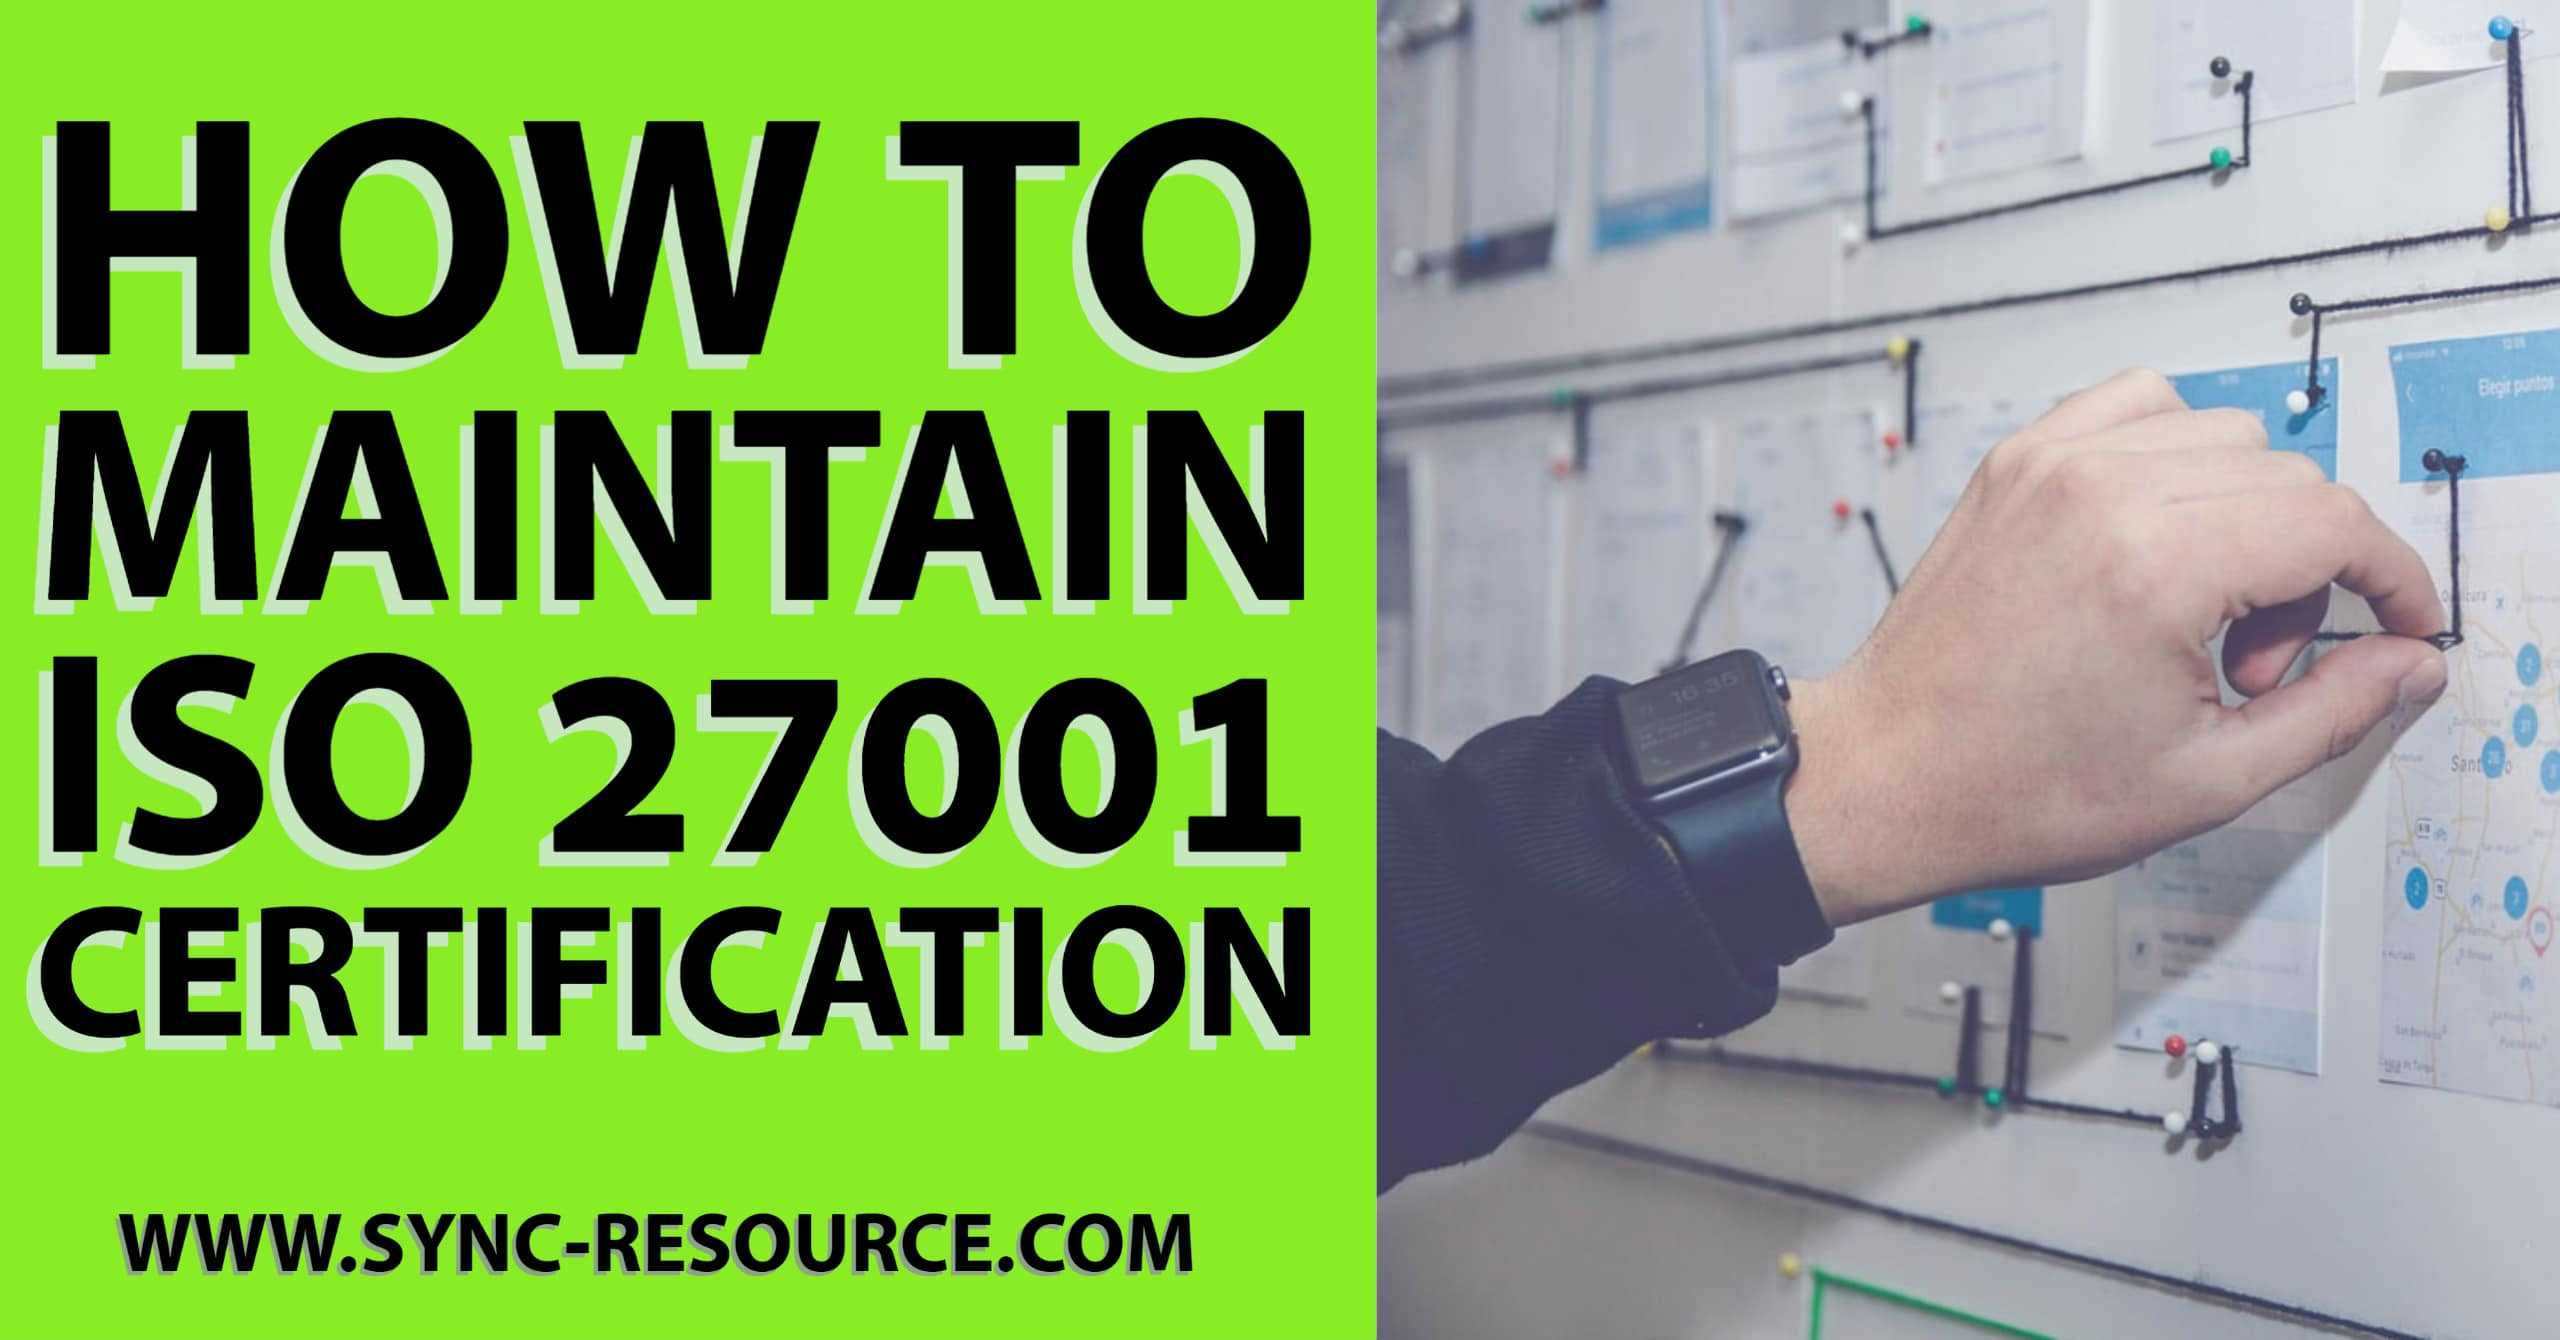 How To Maintain ISO 27001 Certification